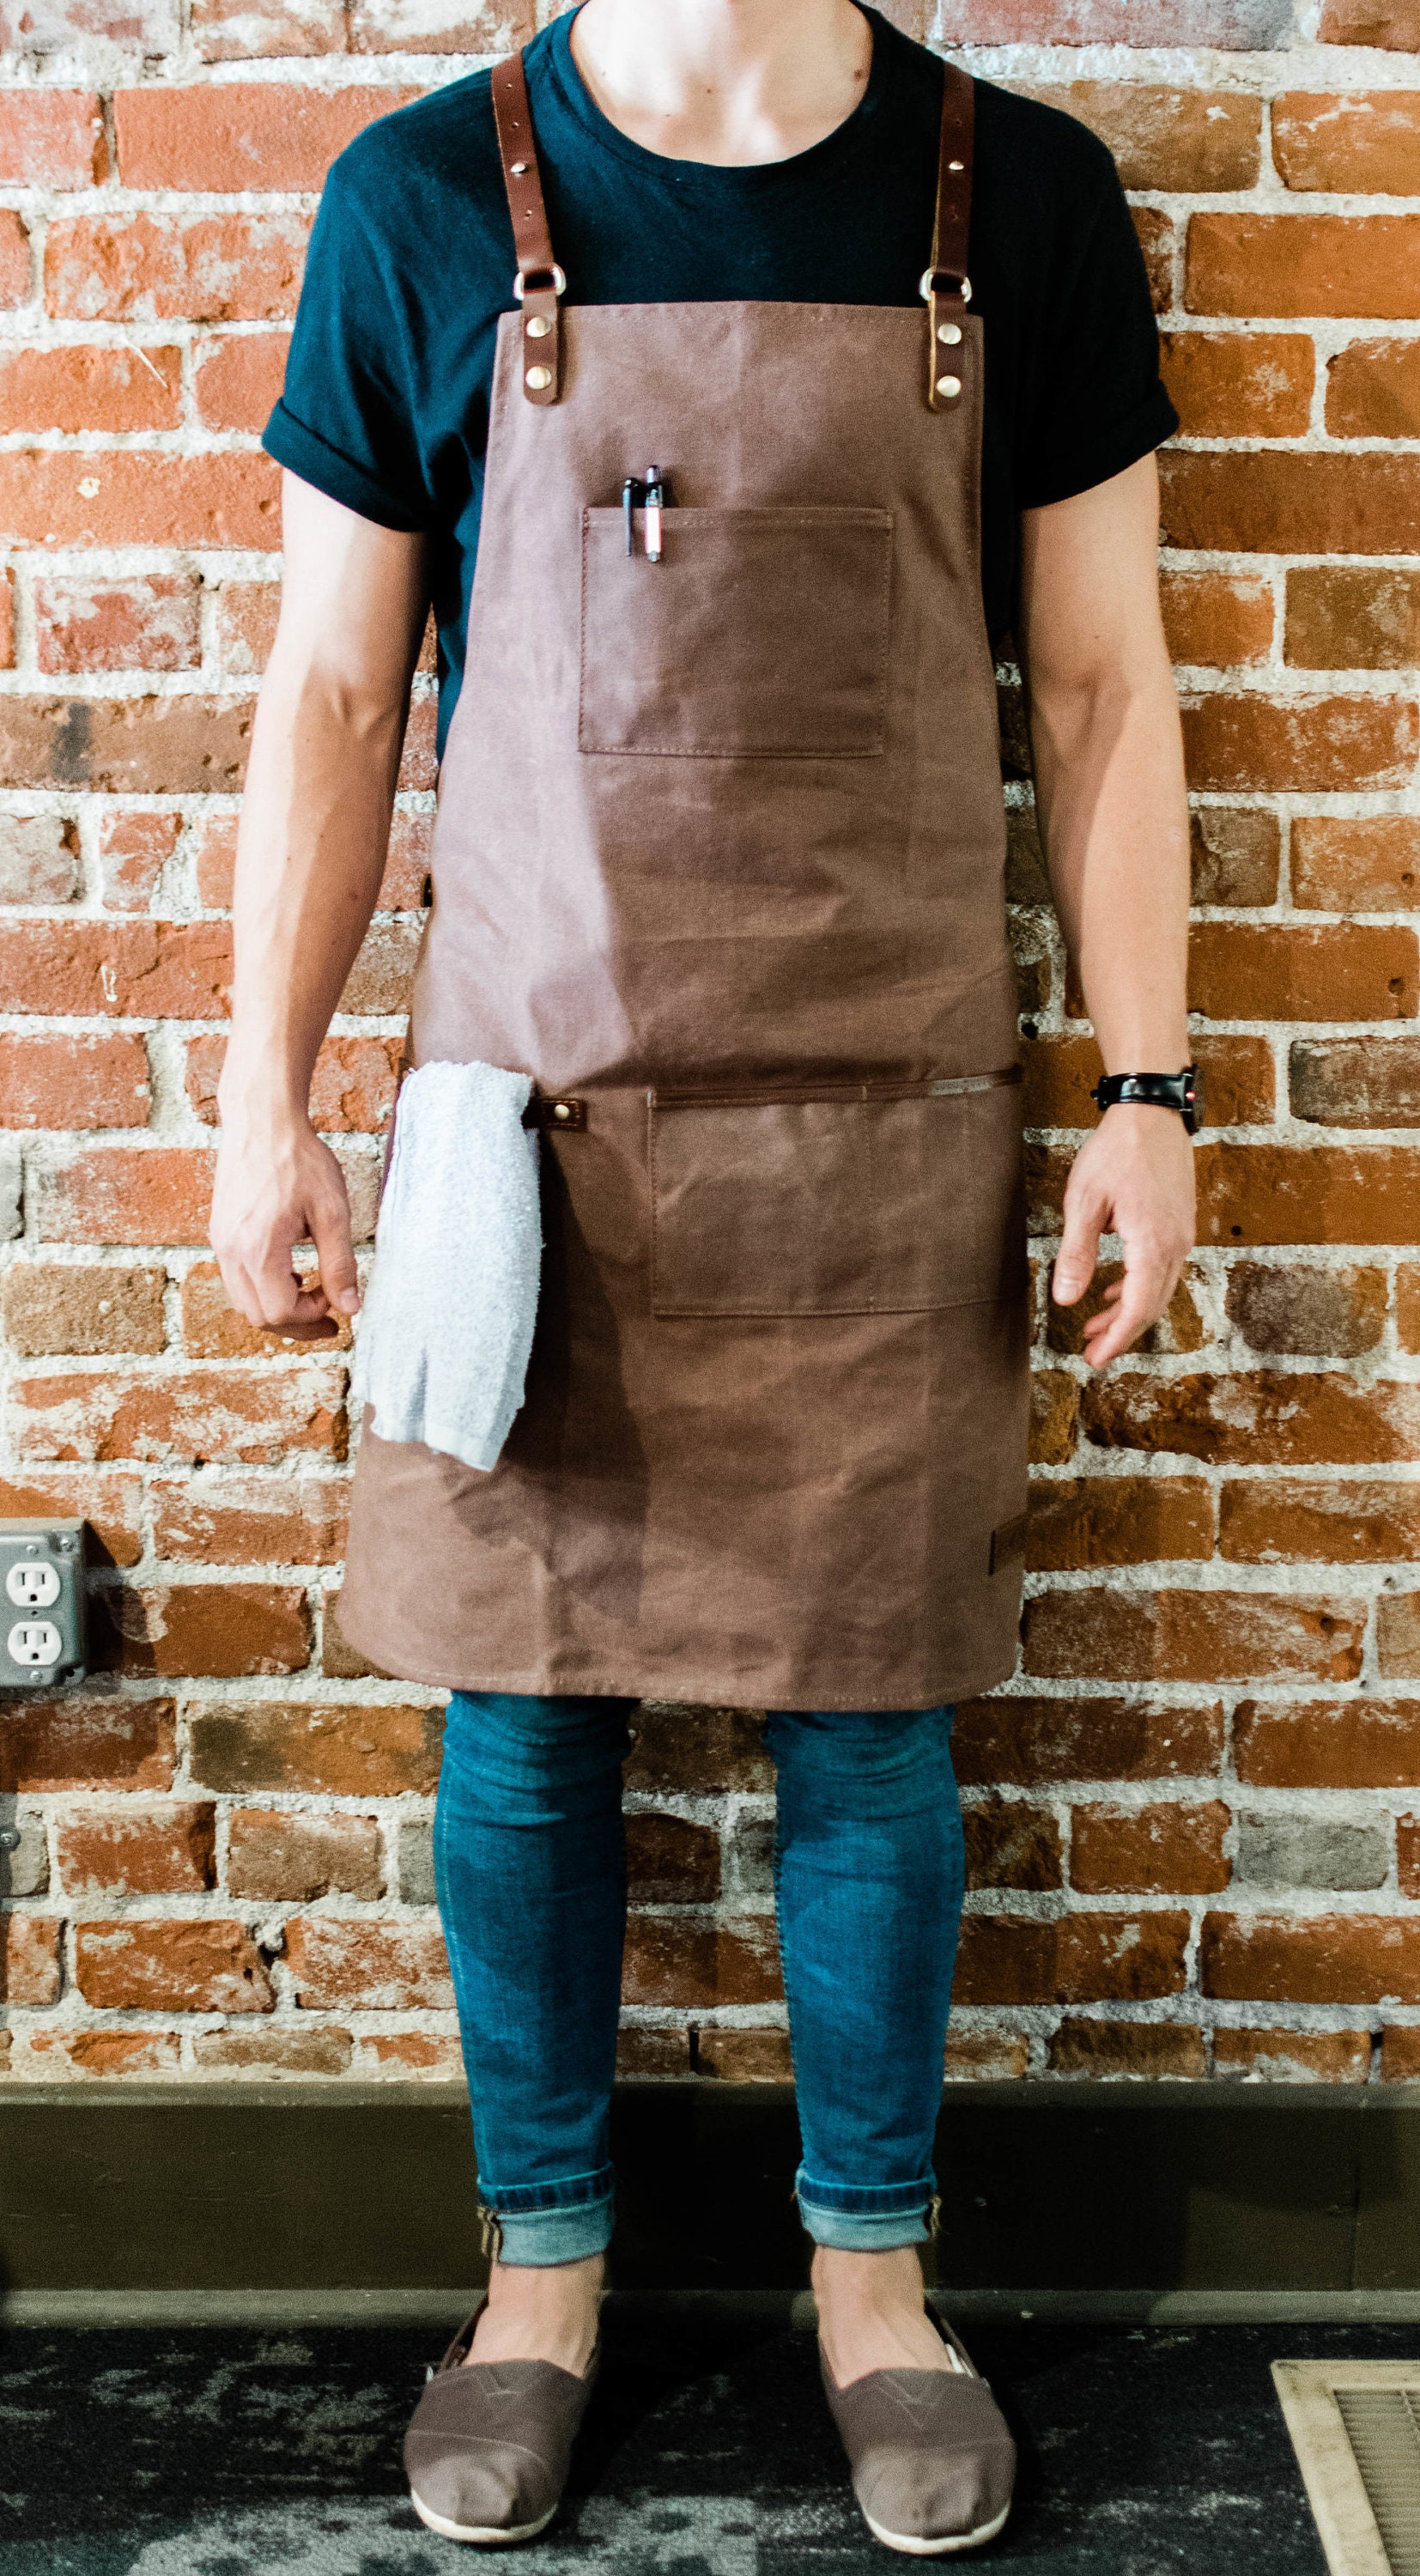 Premium Waxed Canvas Barista Apron   Genuine Leather Straps & Accents    Hickory Brown   Work Apron with Towel Holder for Coffee Shops